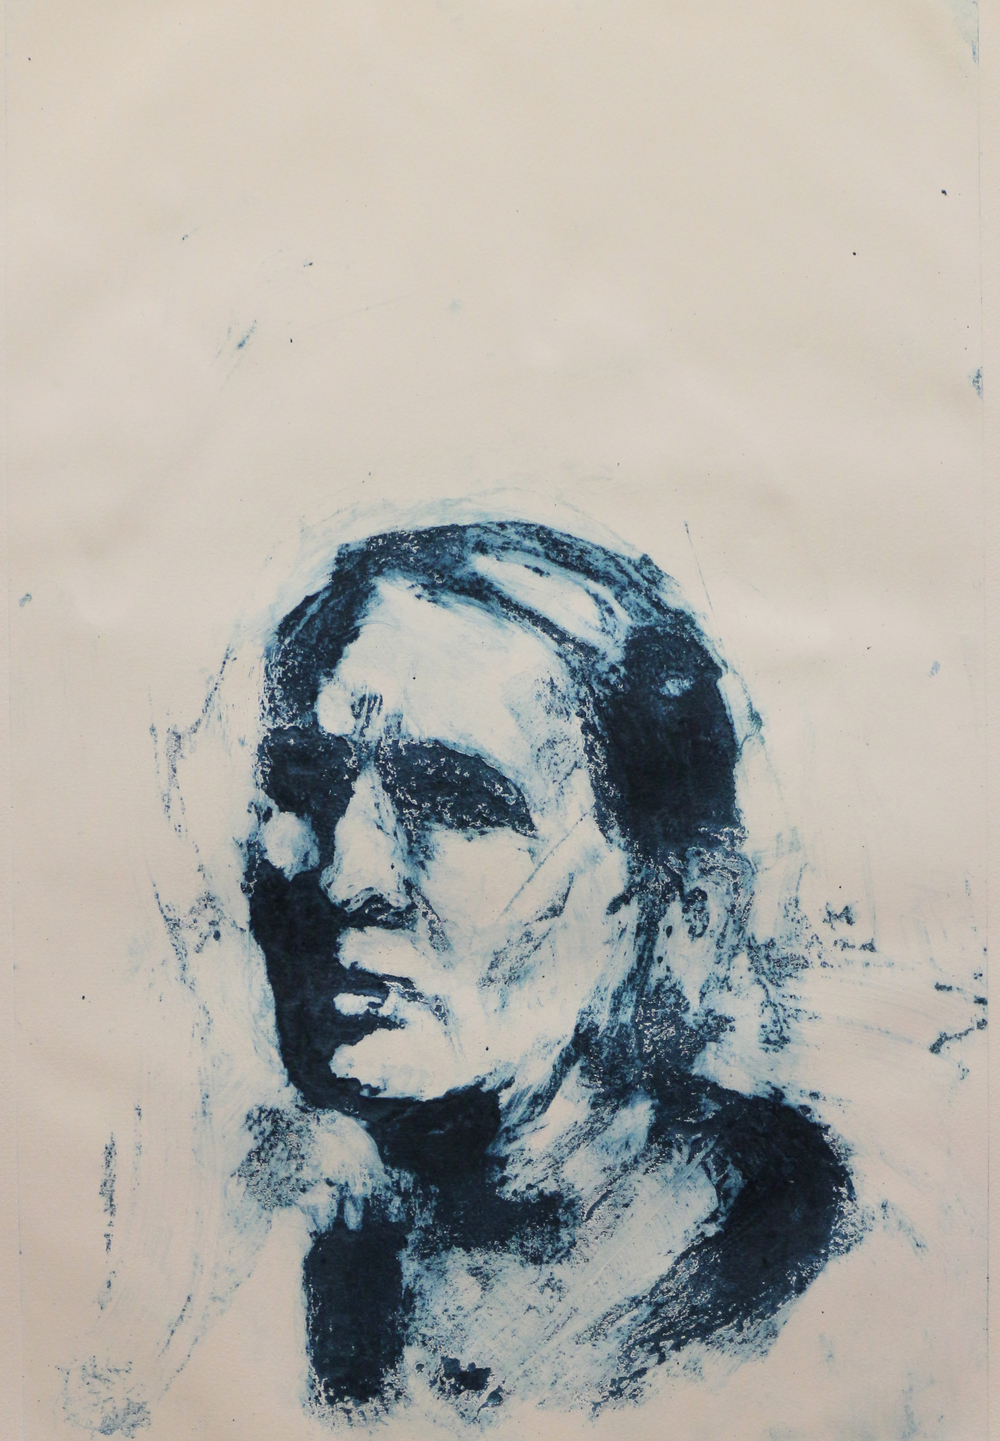 Head 2 - Carborundum Monotype